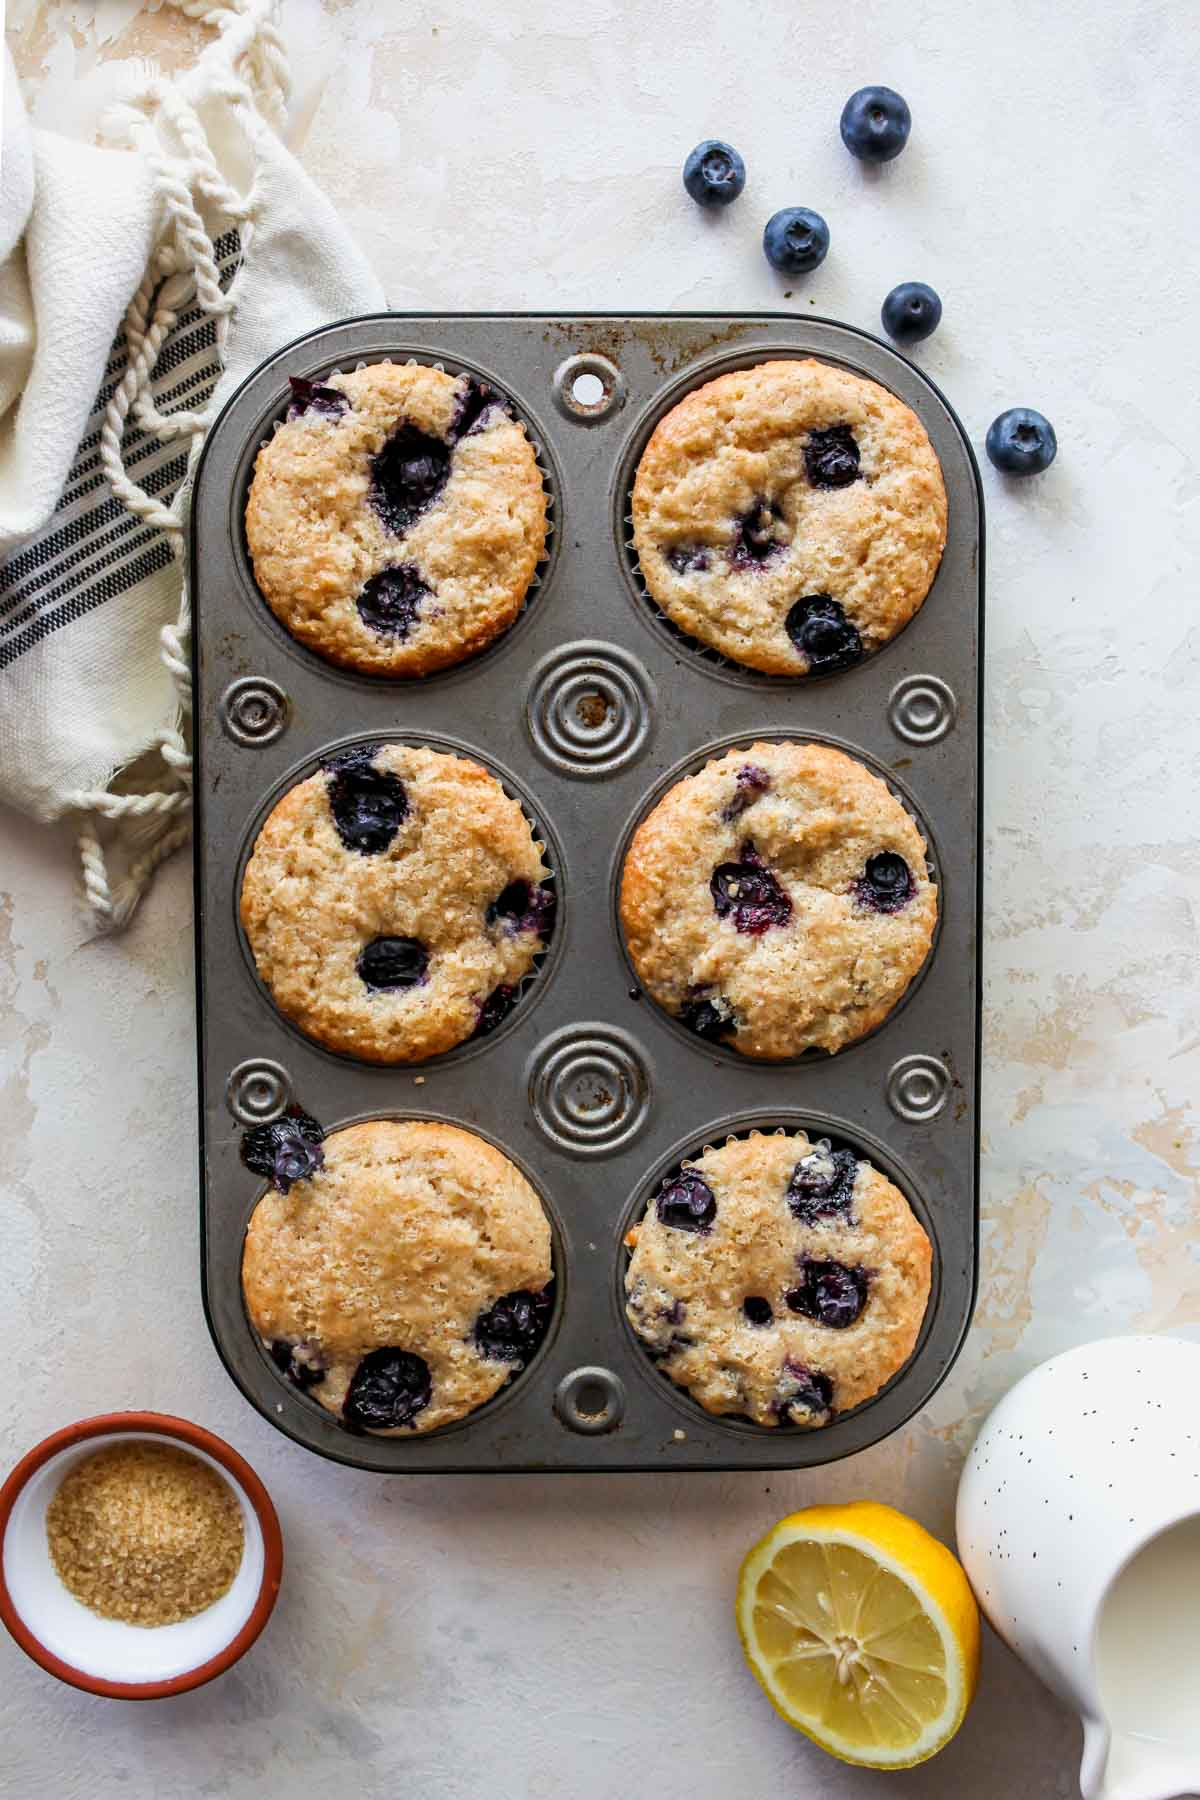 Blueberry muffins baked in a muffin tin